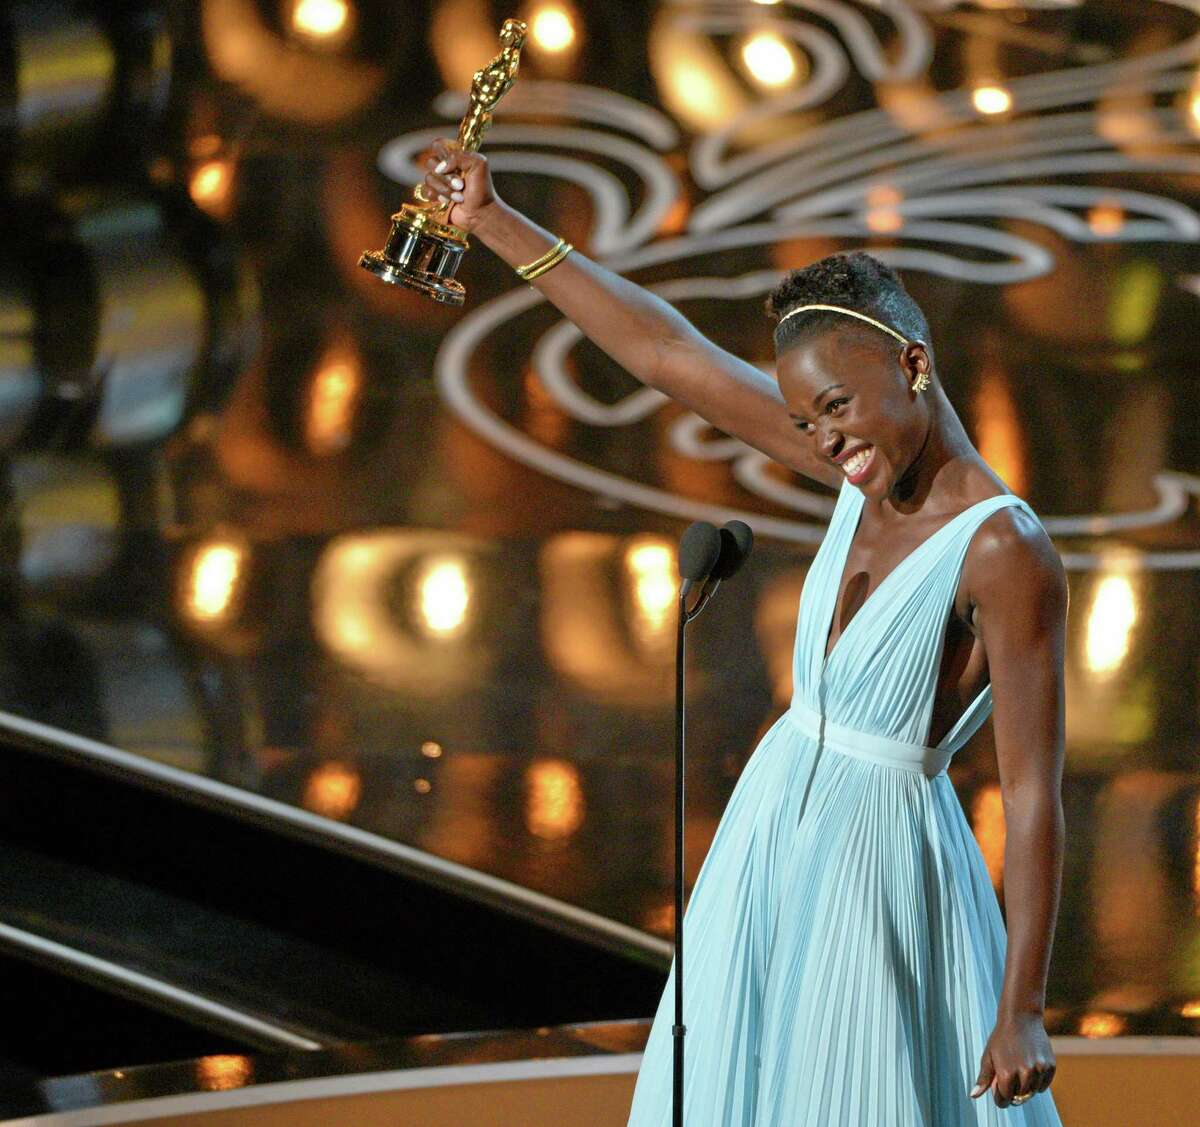 """Lupita Nyongío accepts the award for best actress in a supporting role for """"12 Years a Slave"""" during the Oscars at the Dolby Theatre on Sunday, March 2, 2014, in Los Angeles. (Photo by John Shearer/Invision/AP)"""